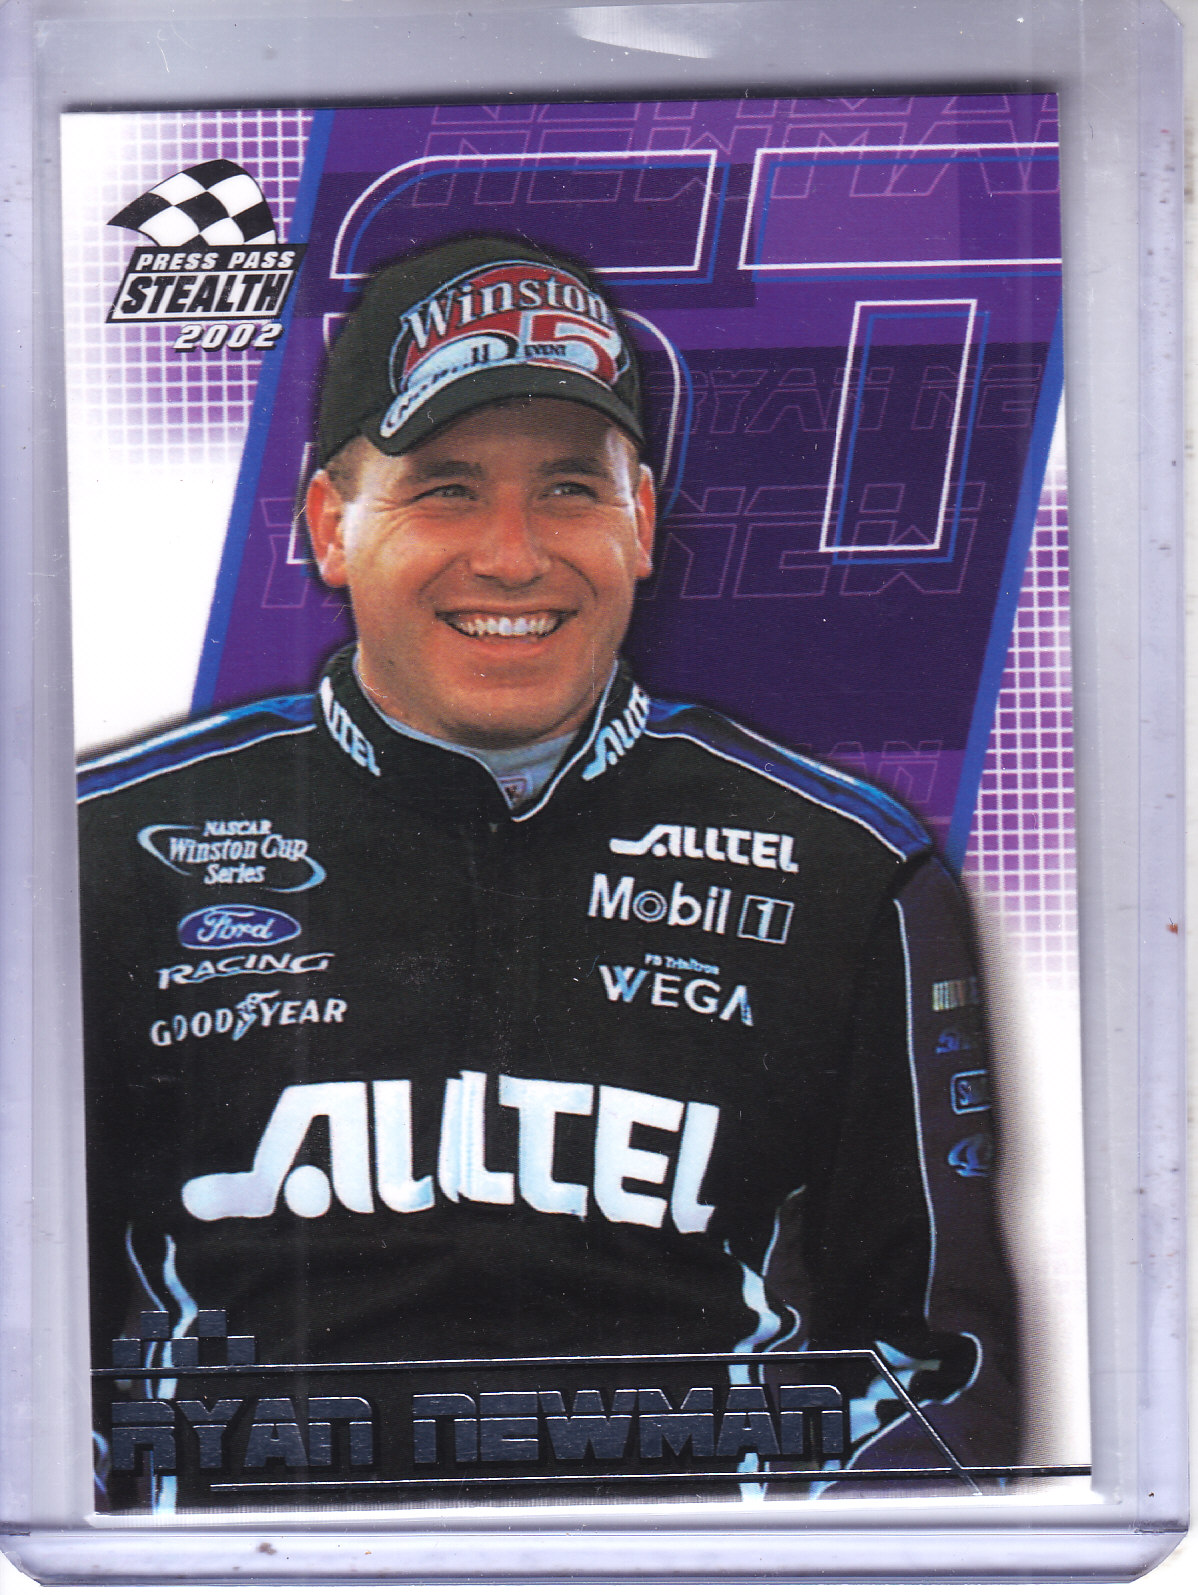 2002 Press Pass Stealth #13 Ryan Newman CRC